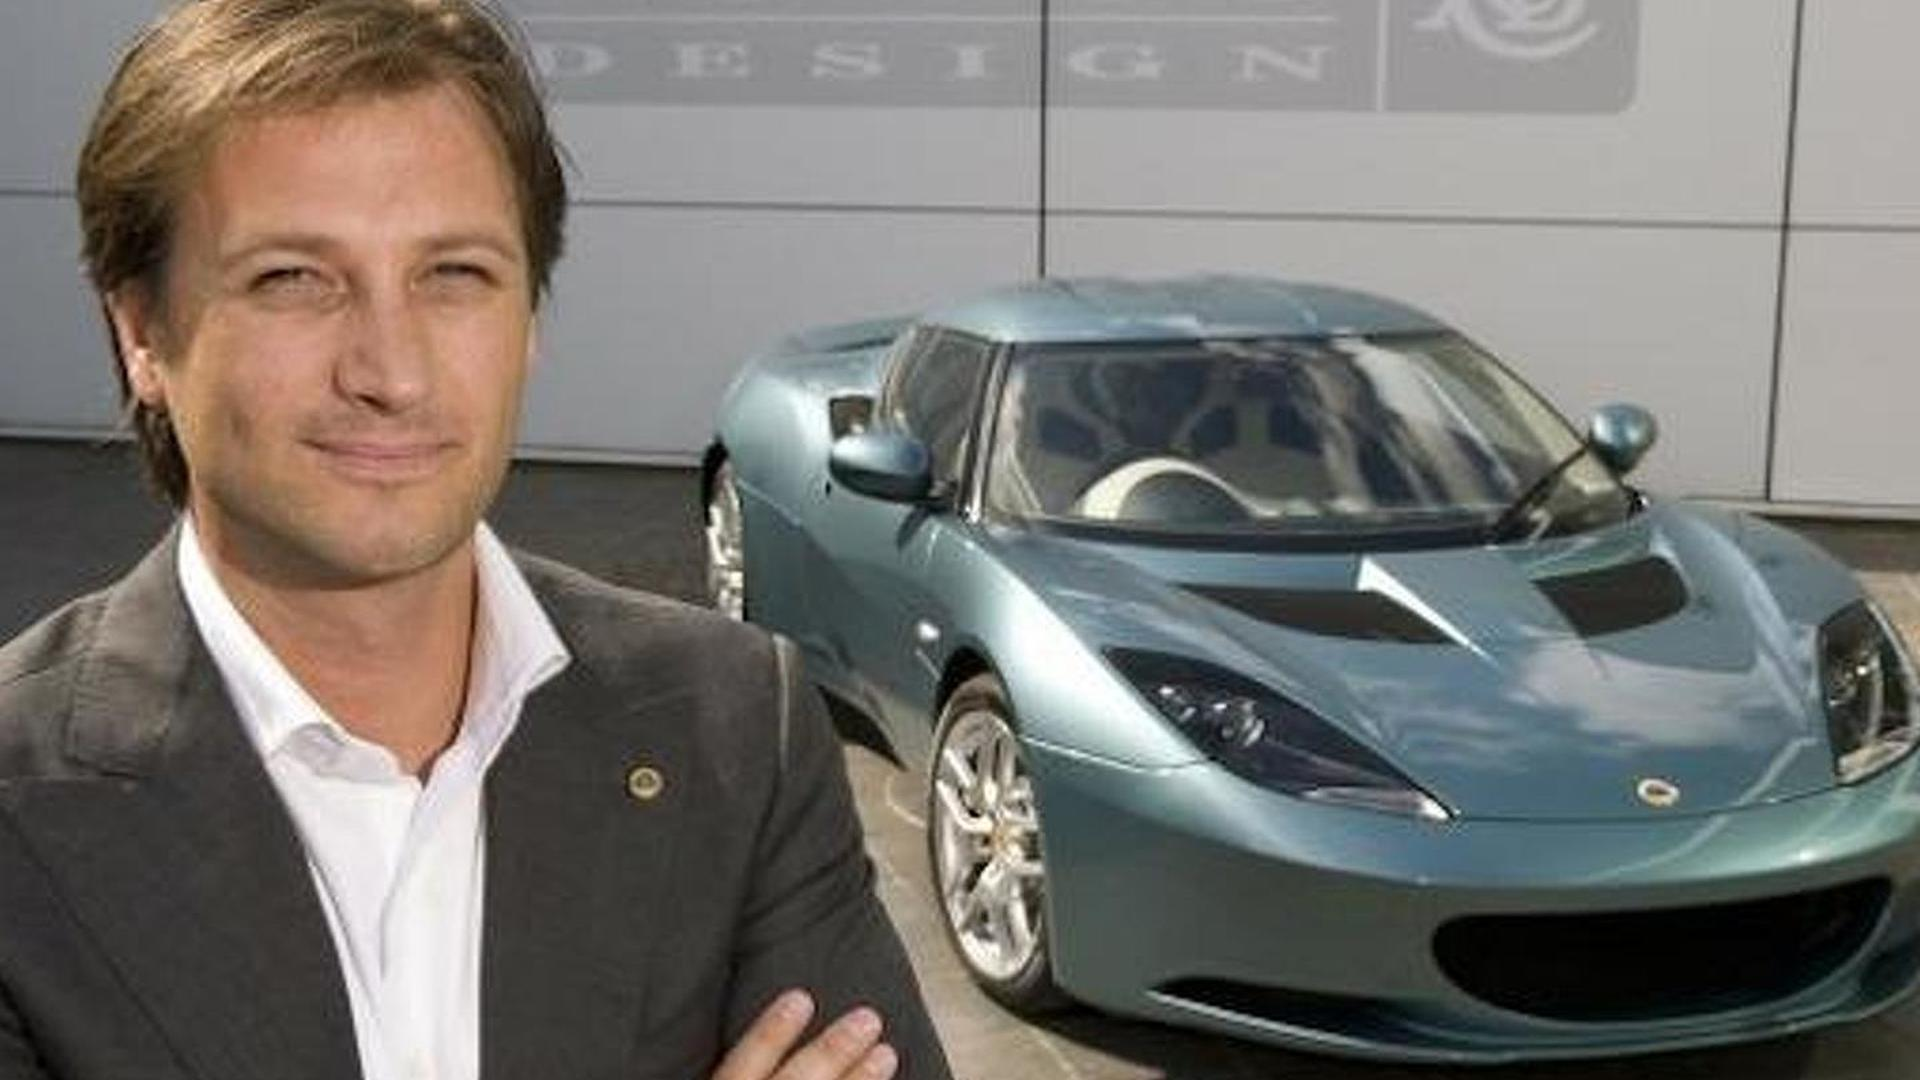 Sacked Lotus CEO Bahar wants $10.6M for wrongful dismisal